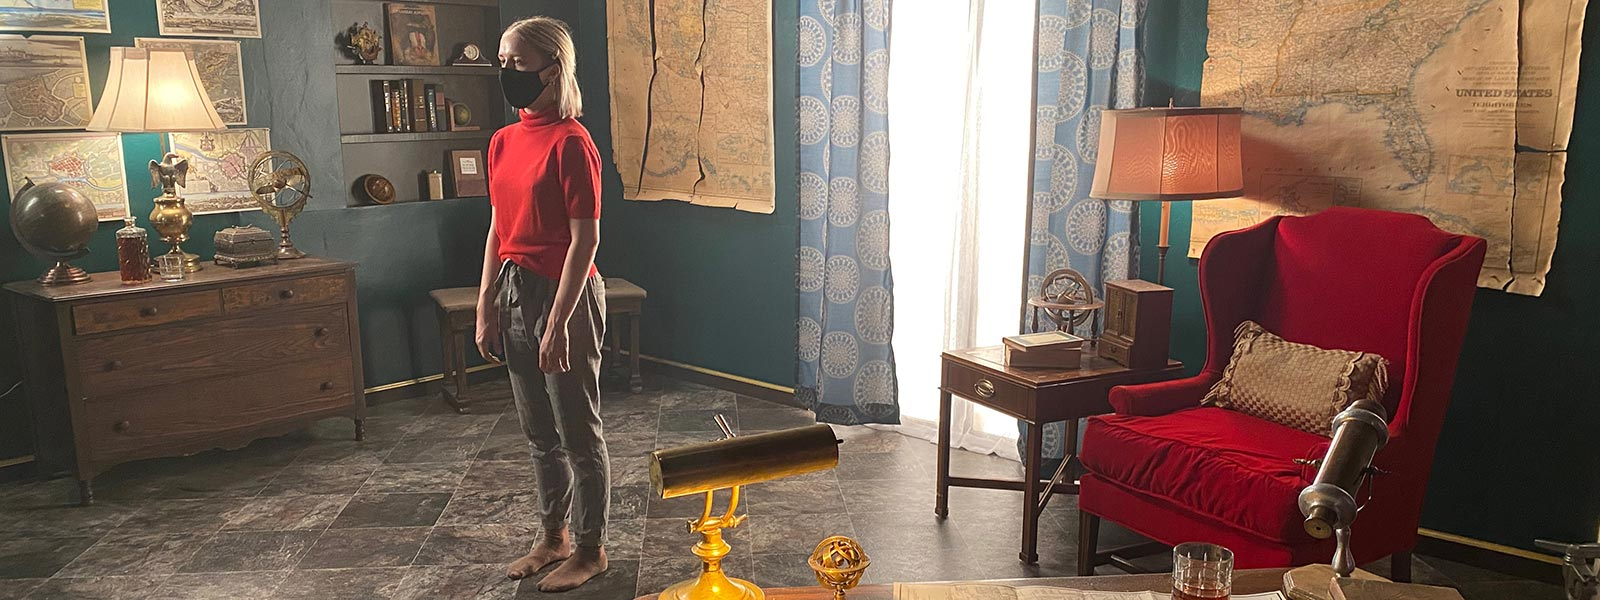 """Scene from """"Alone Together"""" on Grant West's set themed as an Old World cartographer's studio."""